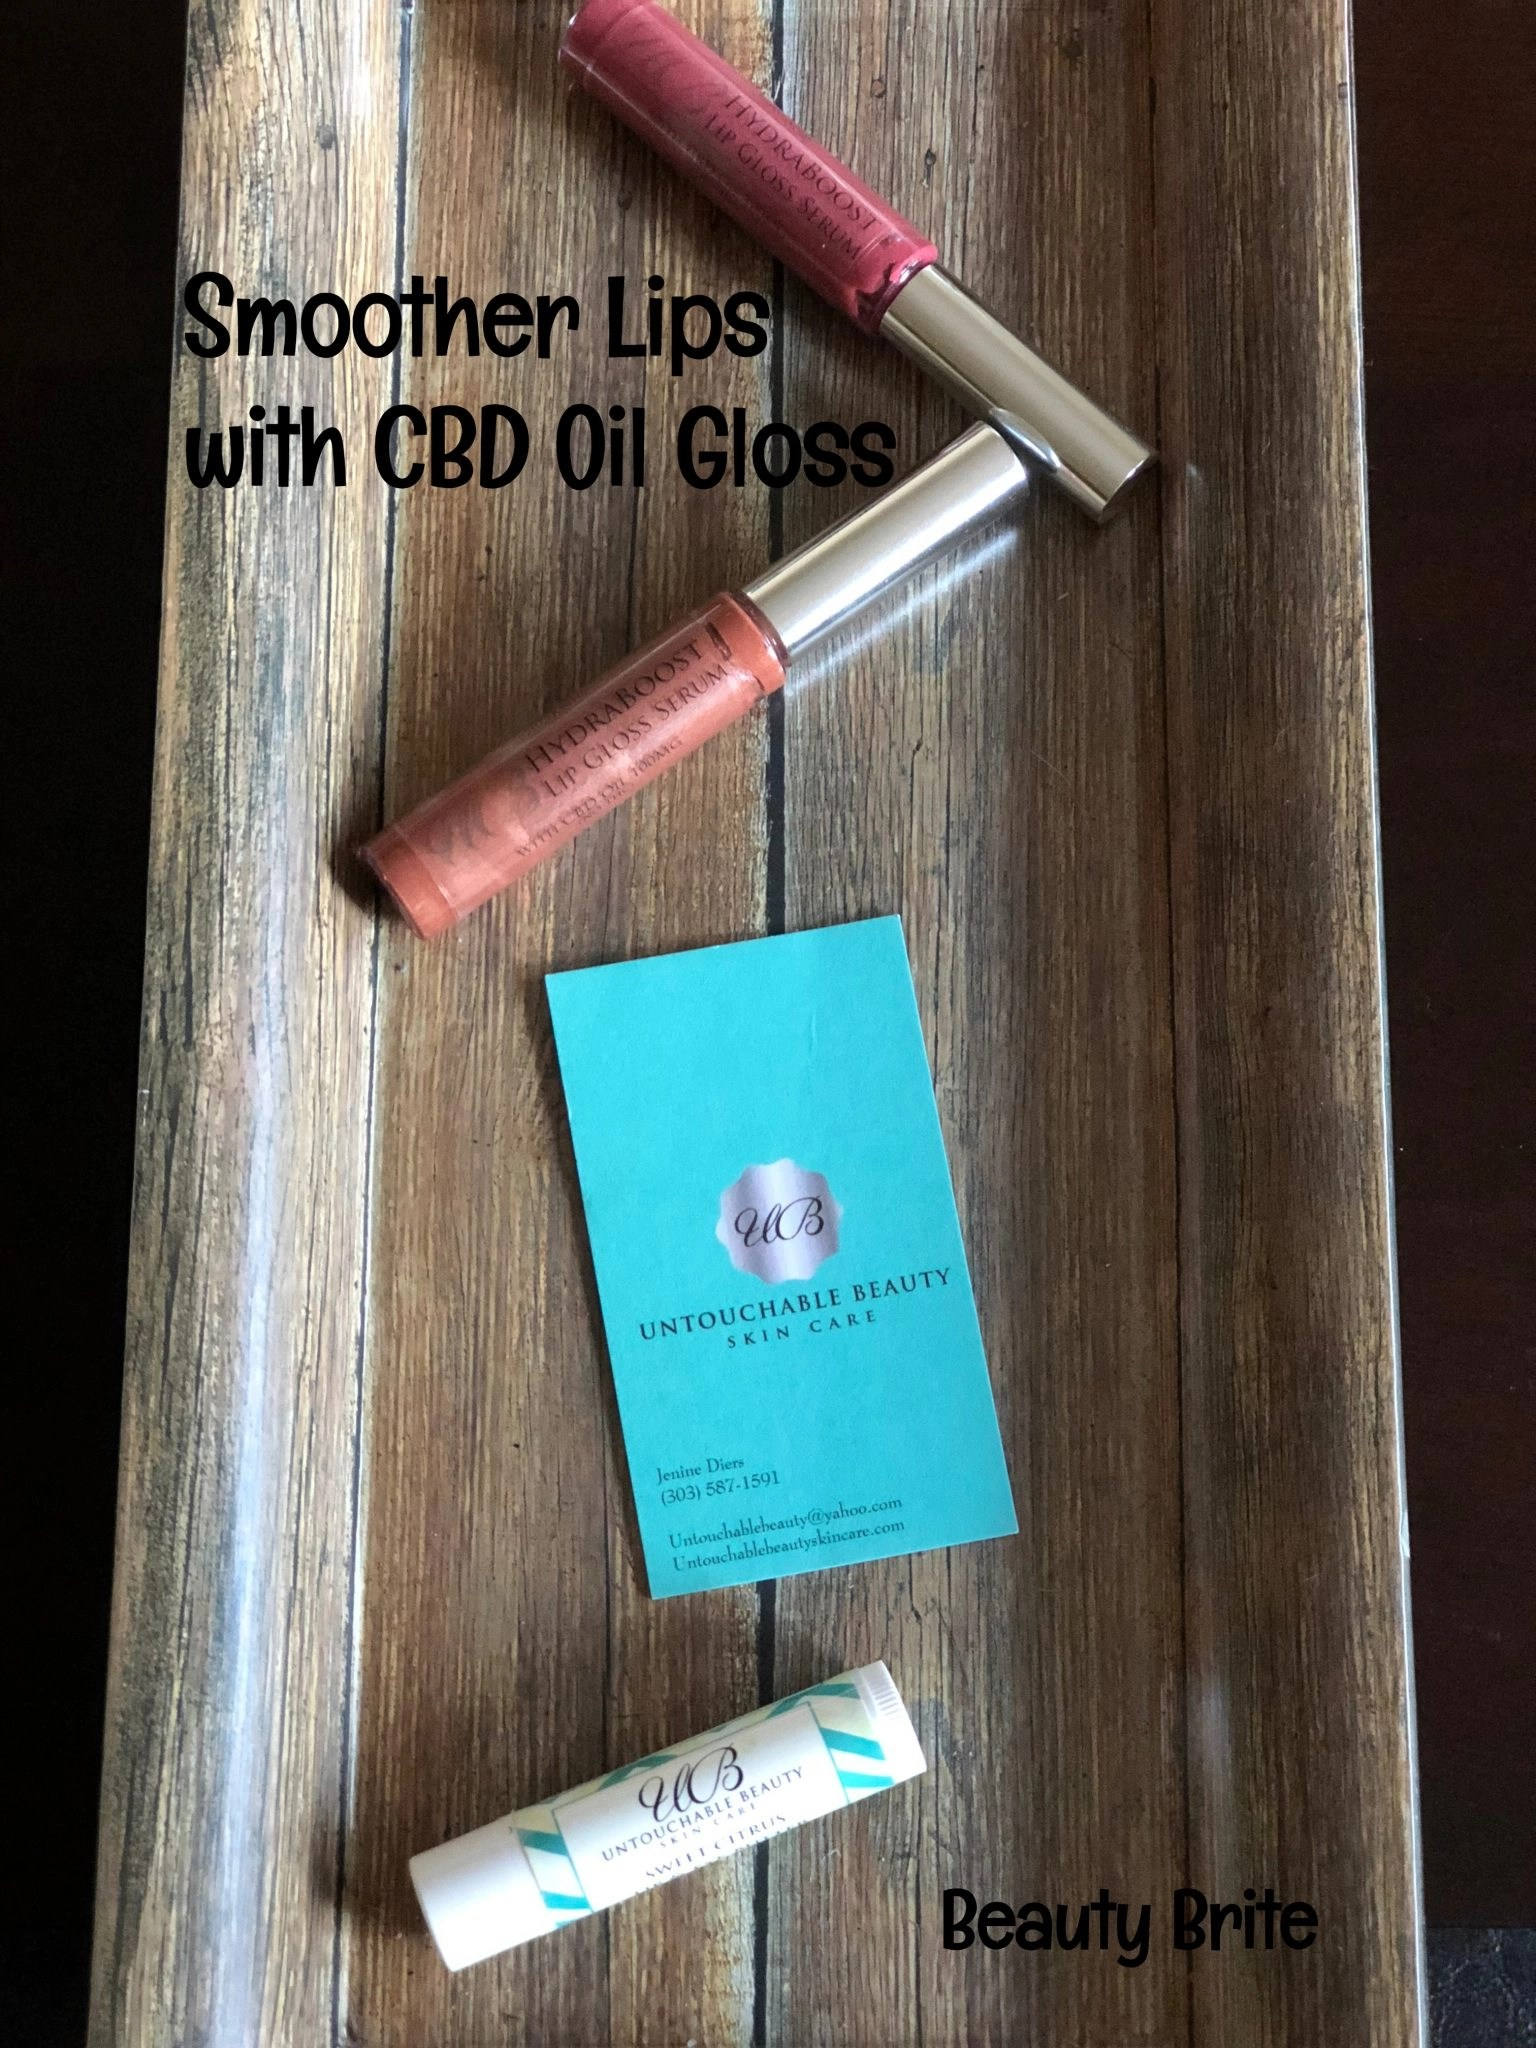 Smoother Lips with CBD Oil Gloss | Beauty Brite